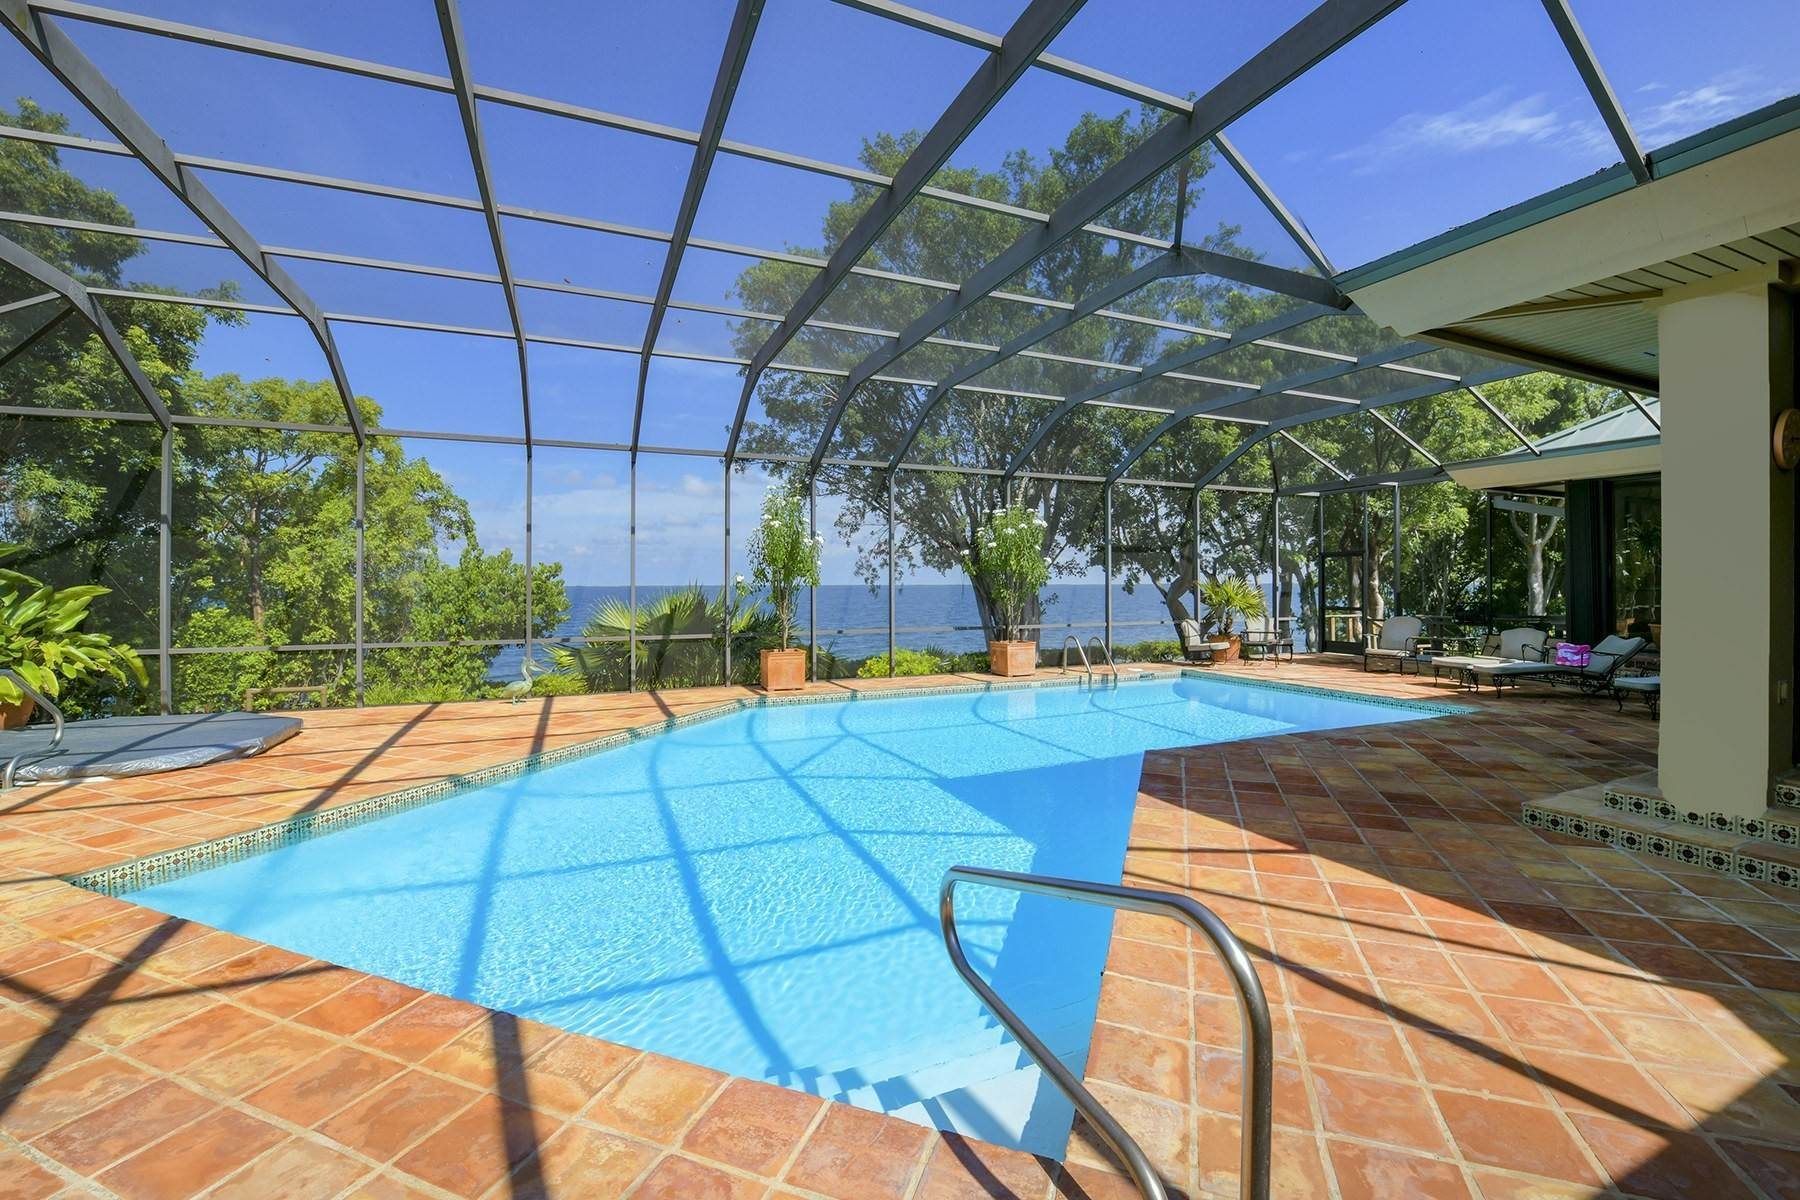 32. Property for Sale at 10 Cannon Point, Key Largo, FL 10 Cannon Point Key Largo, Florida 33037 United States